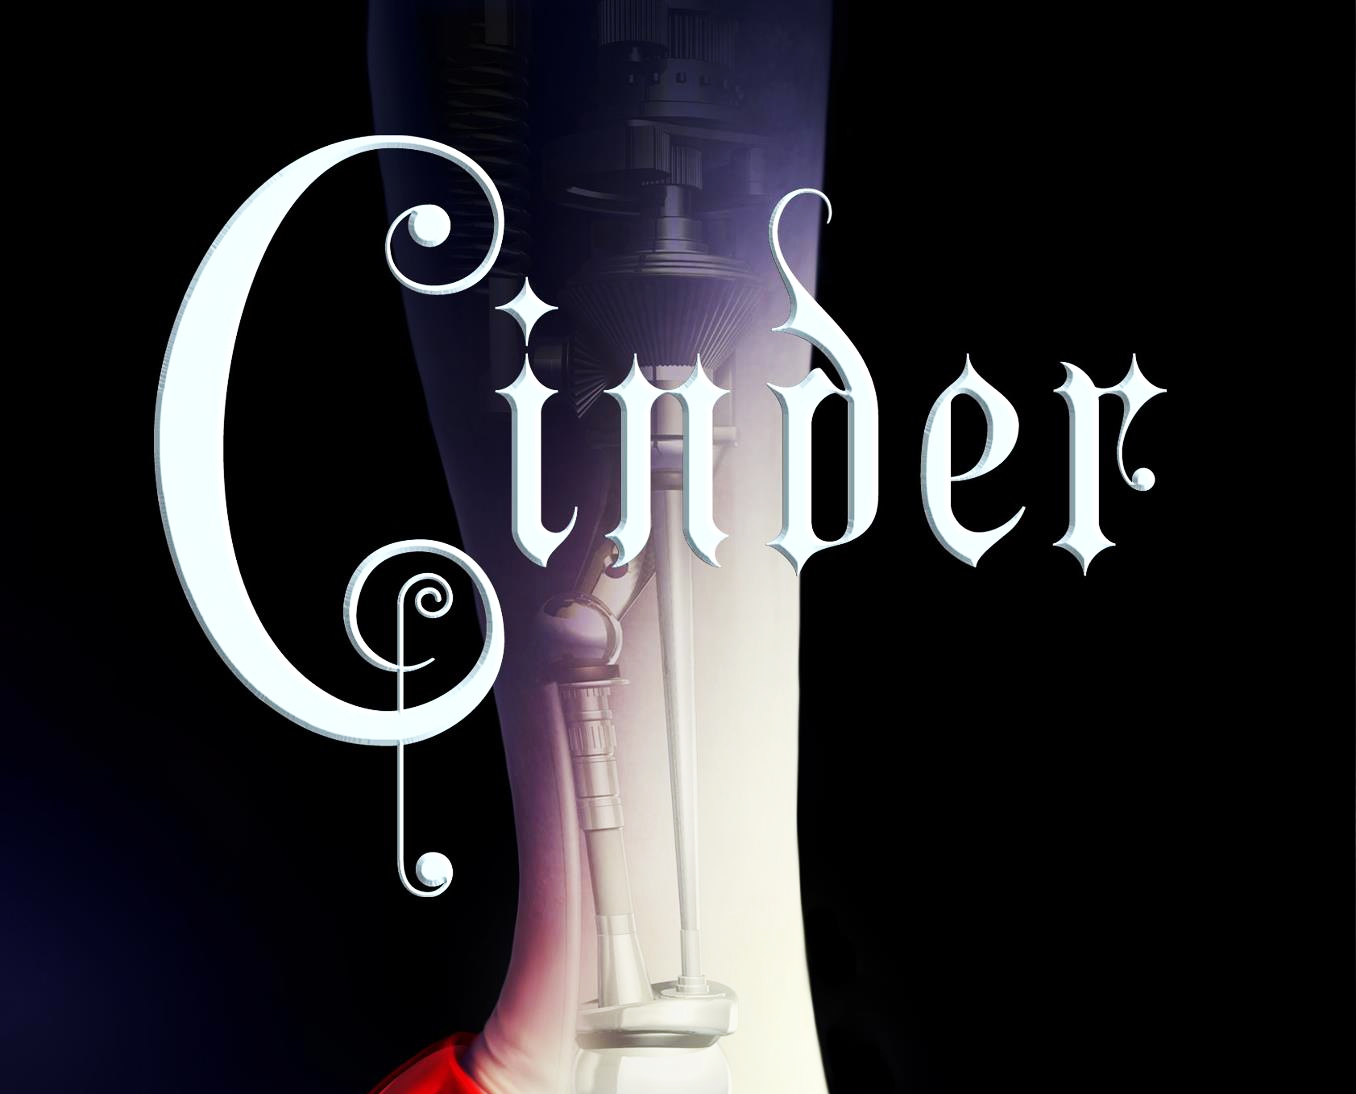 Cinder marissa meyer the lunar chronicles